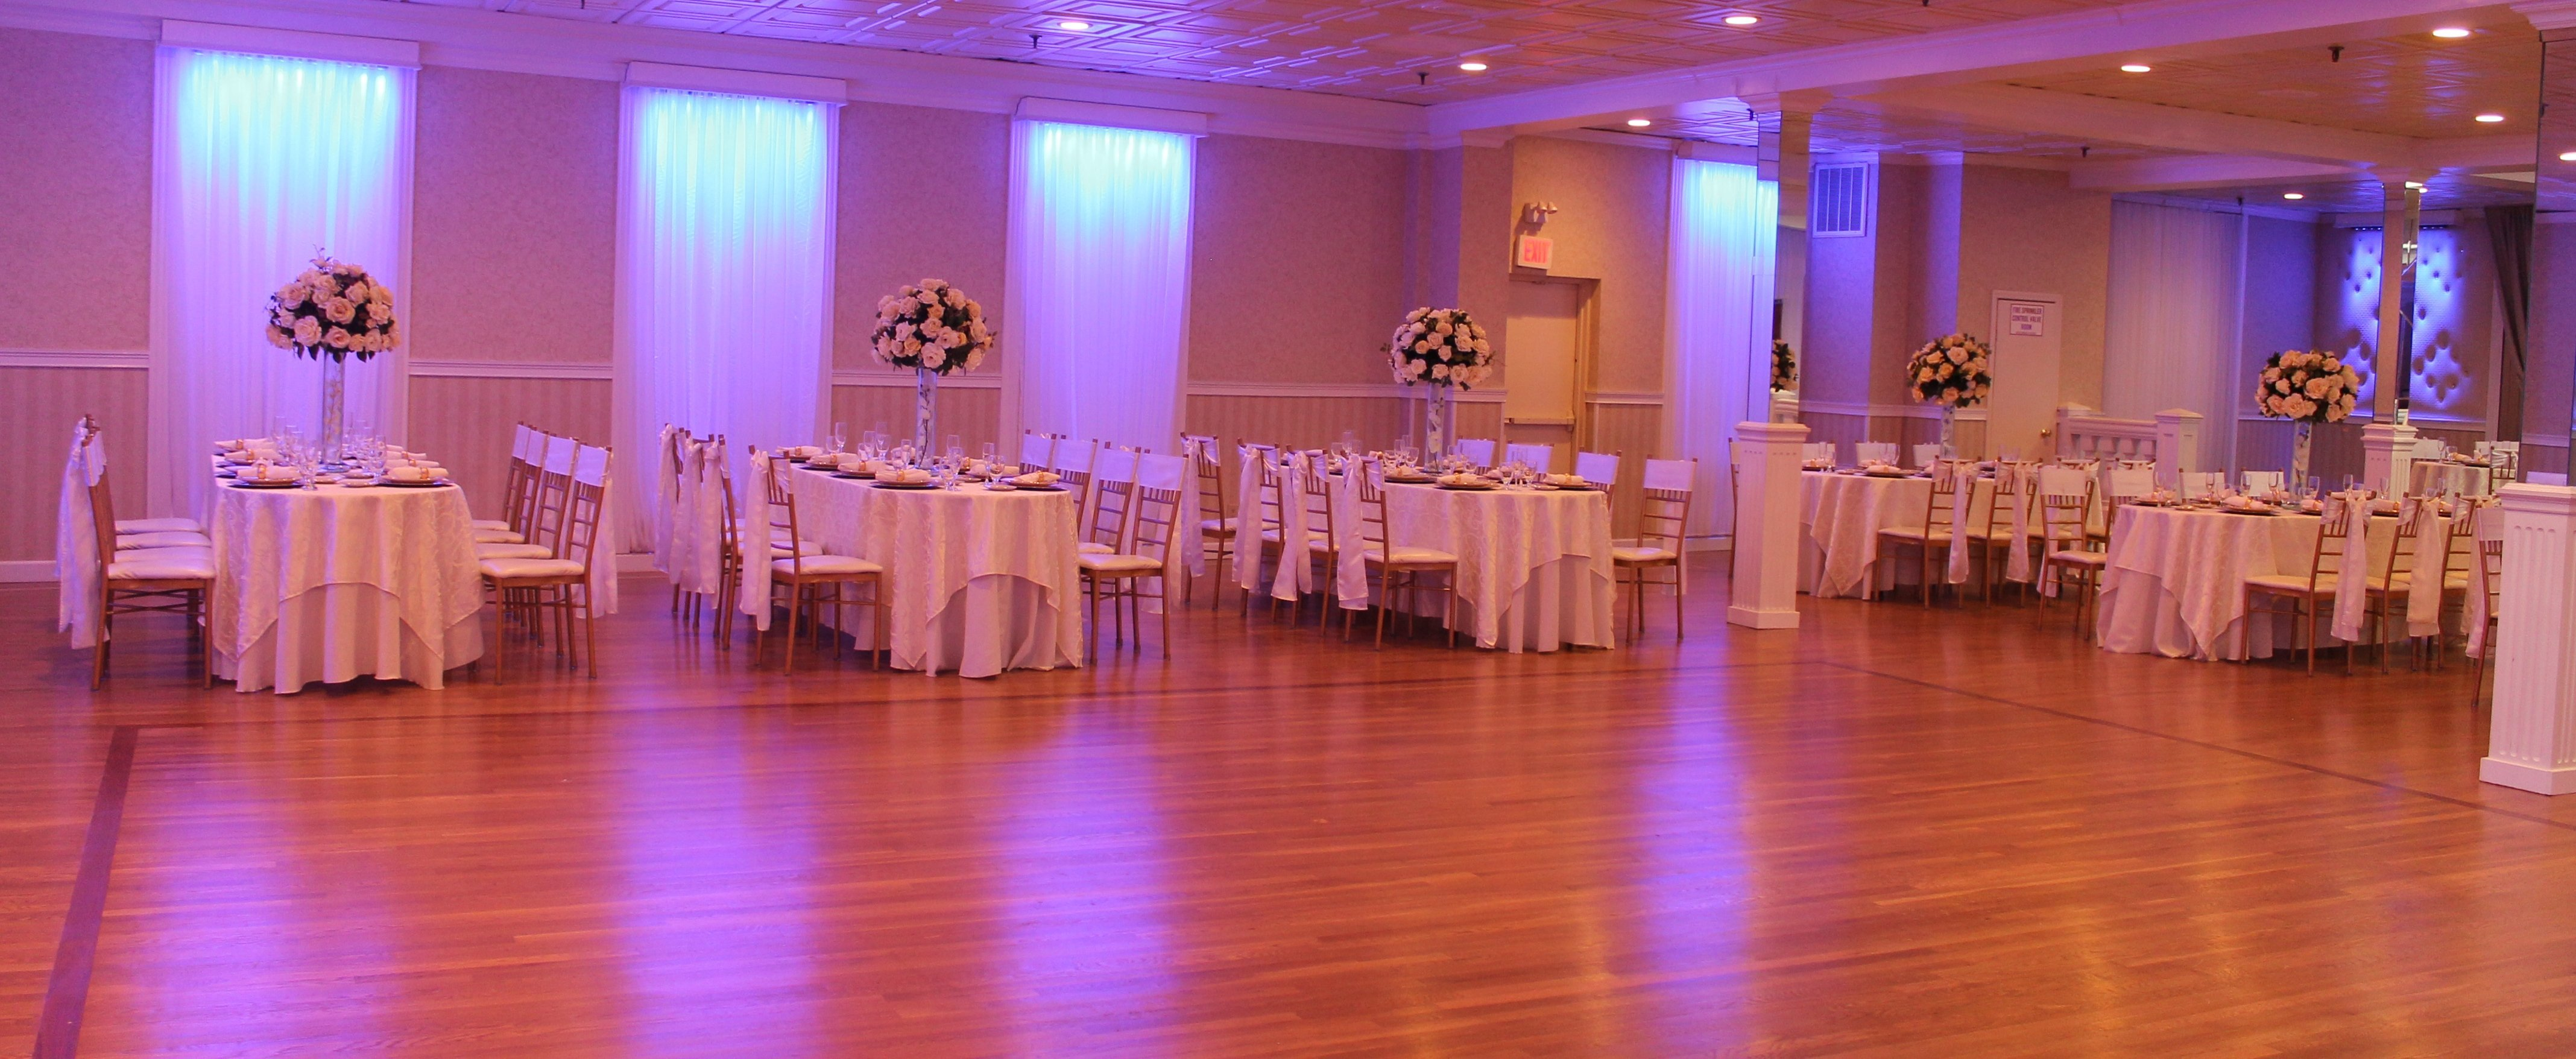 wedding packages Suffolk County, NY